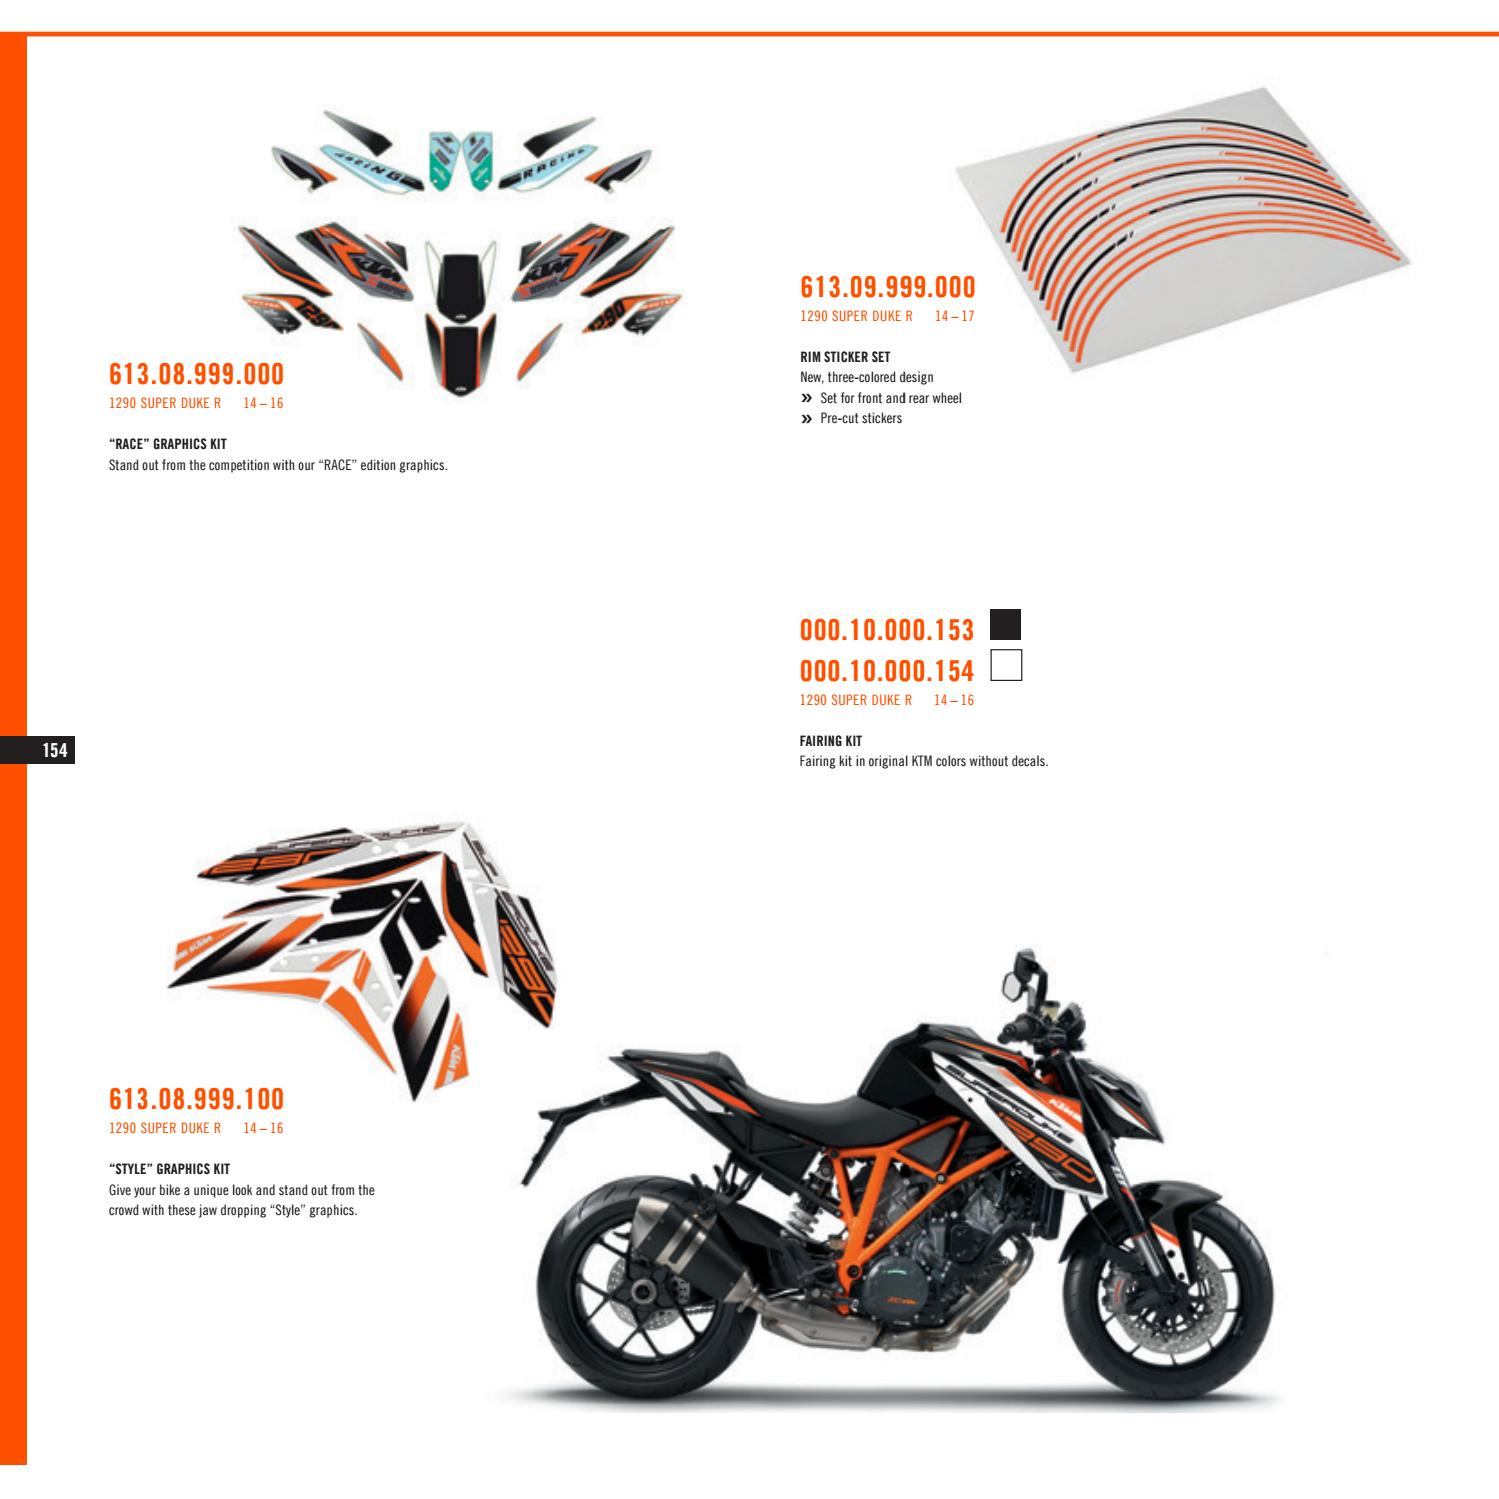 Ktm powerparts street catalog 2017 usa